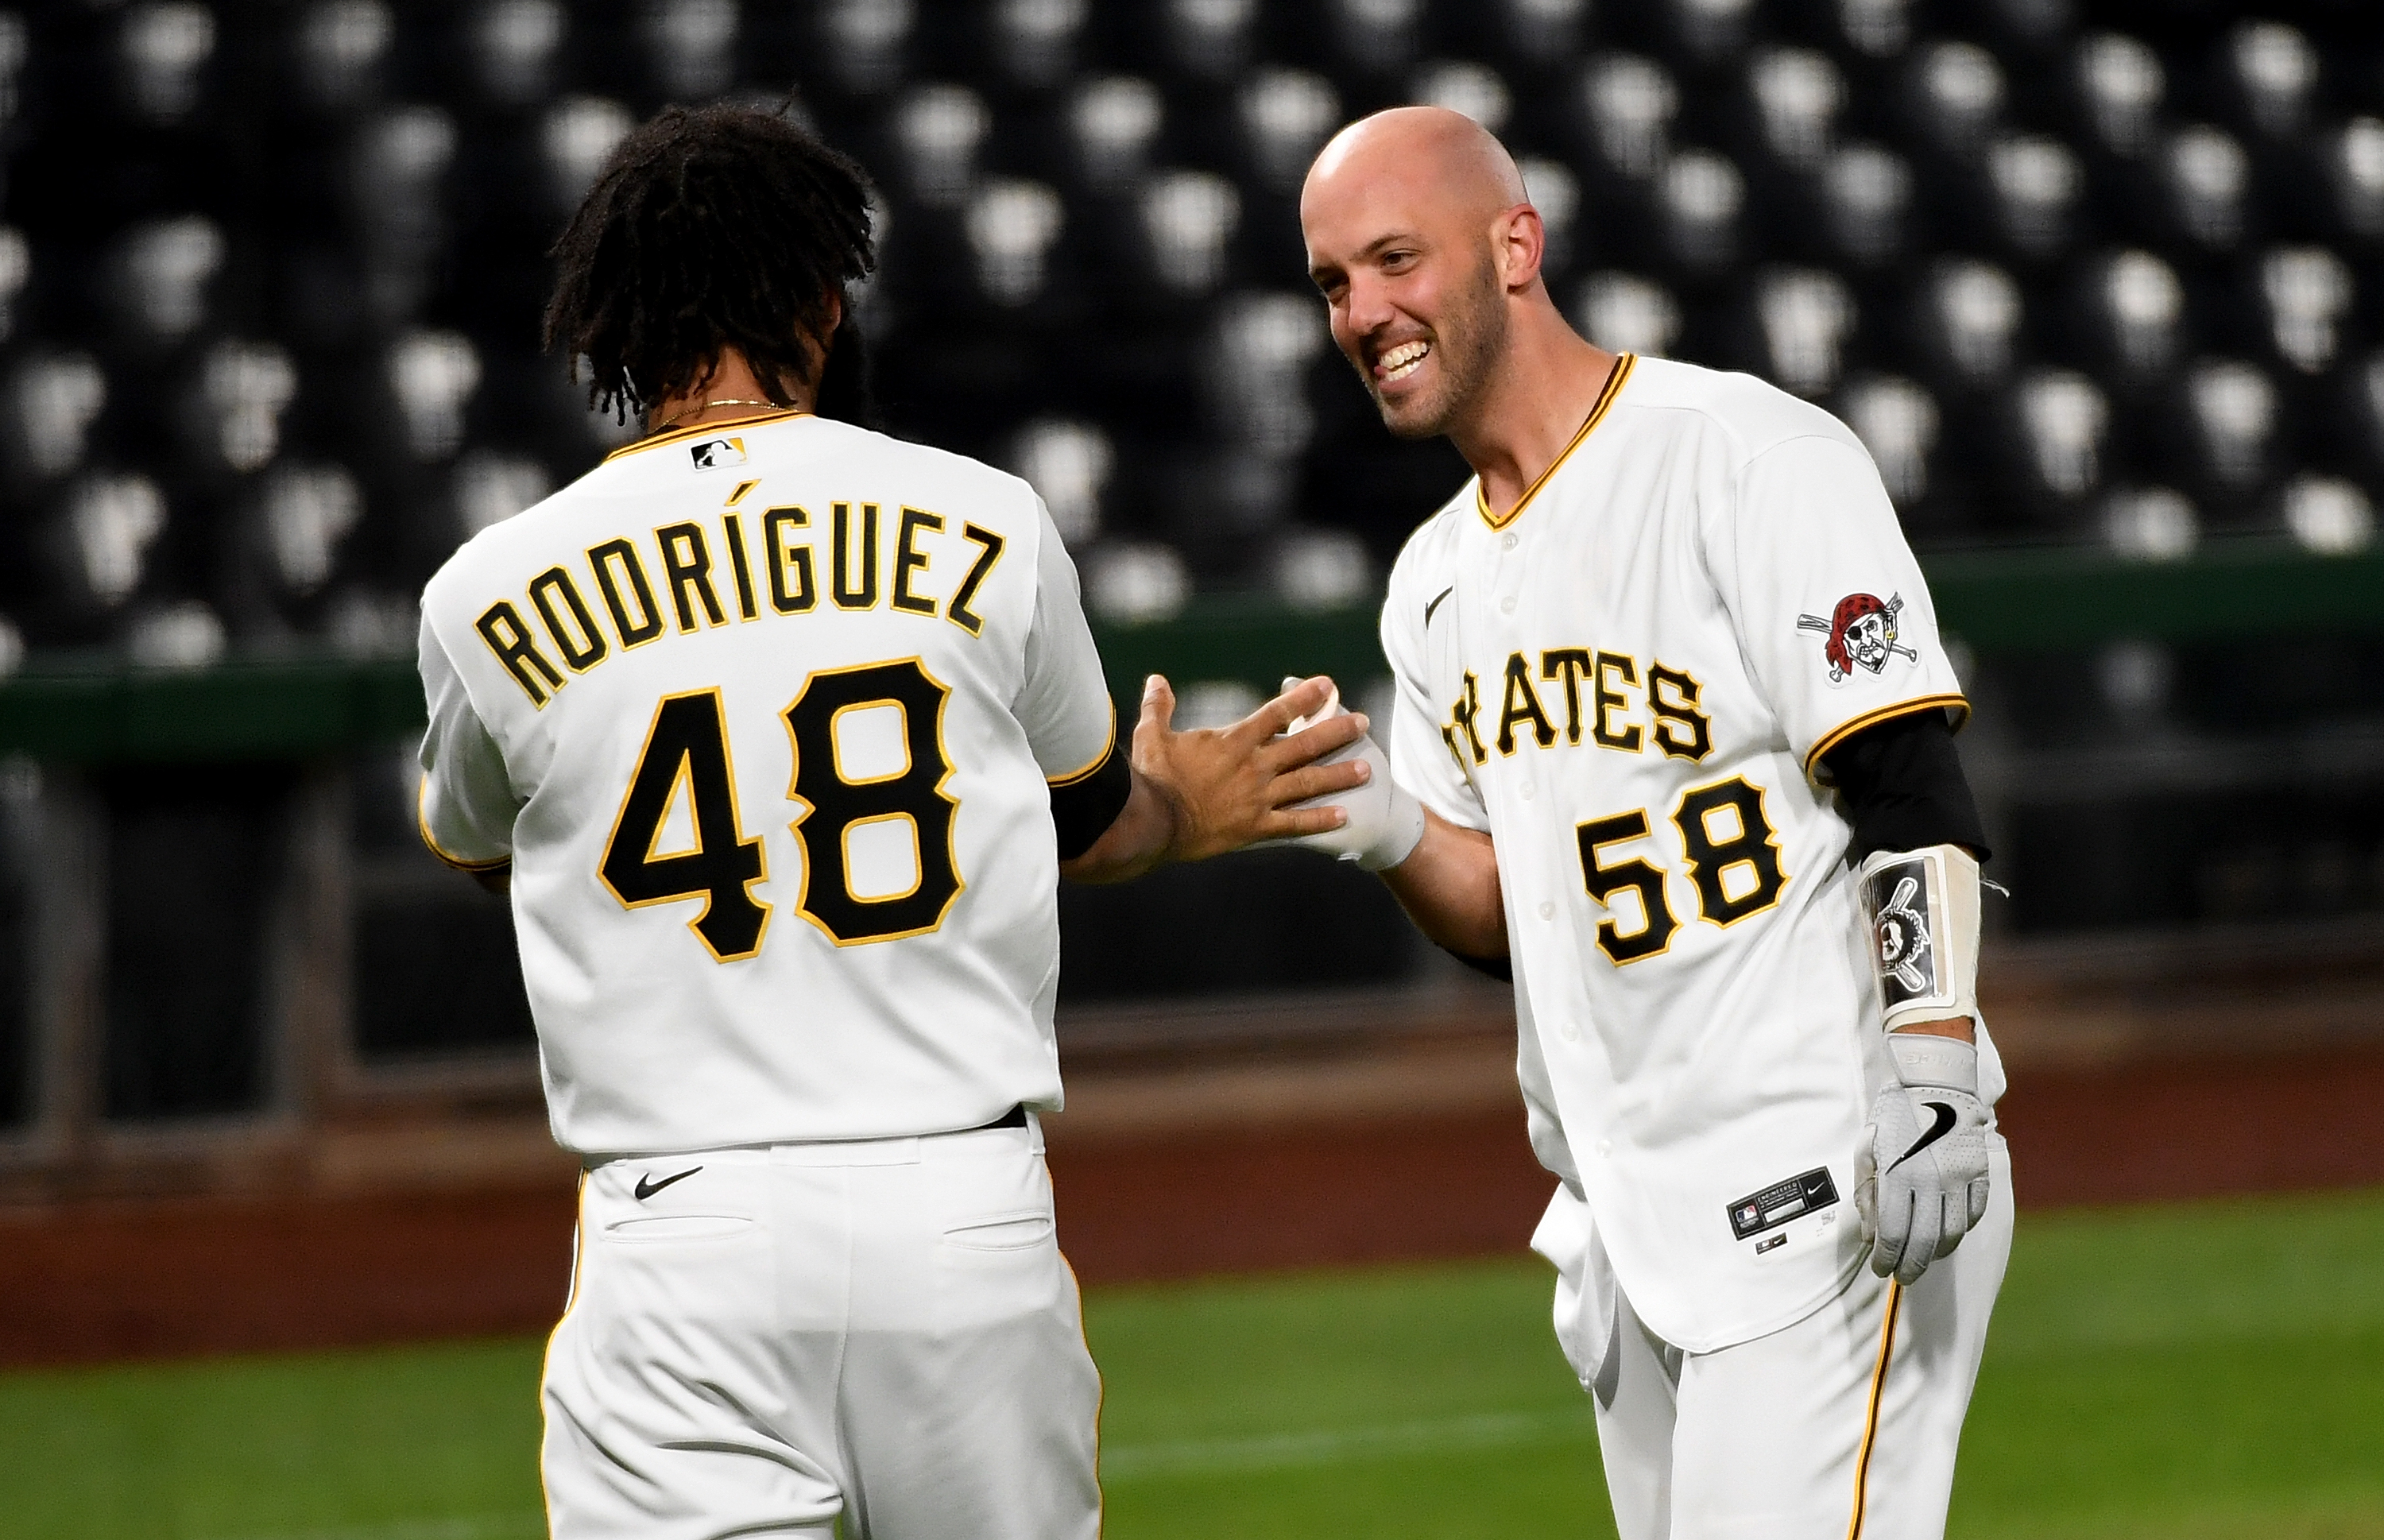 Cubs Clinch Playoff Spot, Pirates Win on Stallings HR in 9th